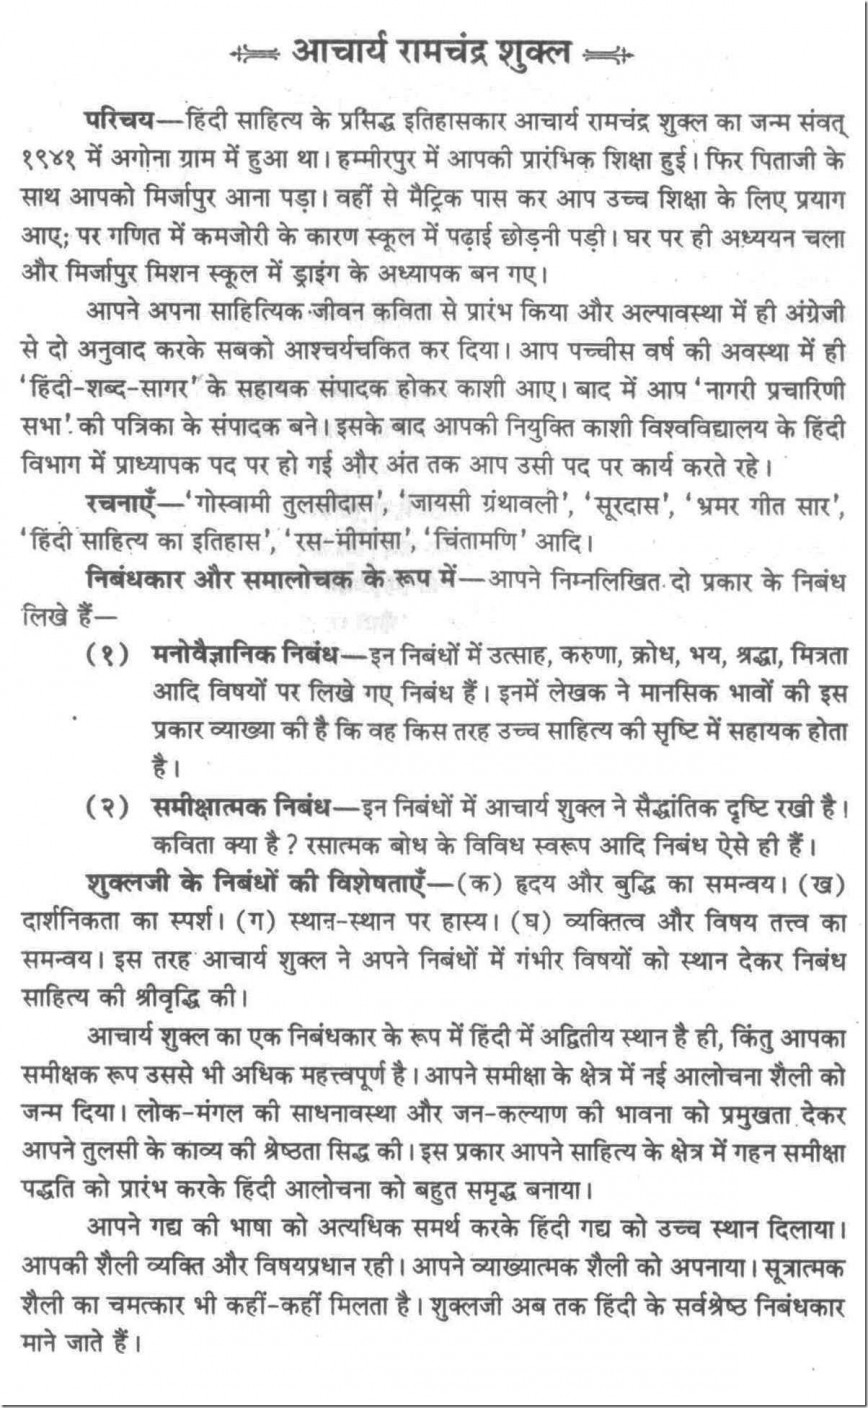 010 Essay On Helping Friend In Trouble 100018 Thumb Excellent A Narrative Hindi 868